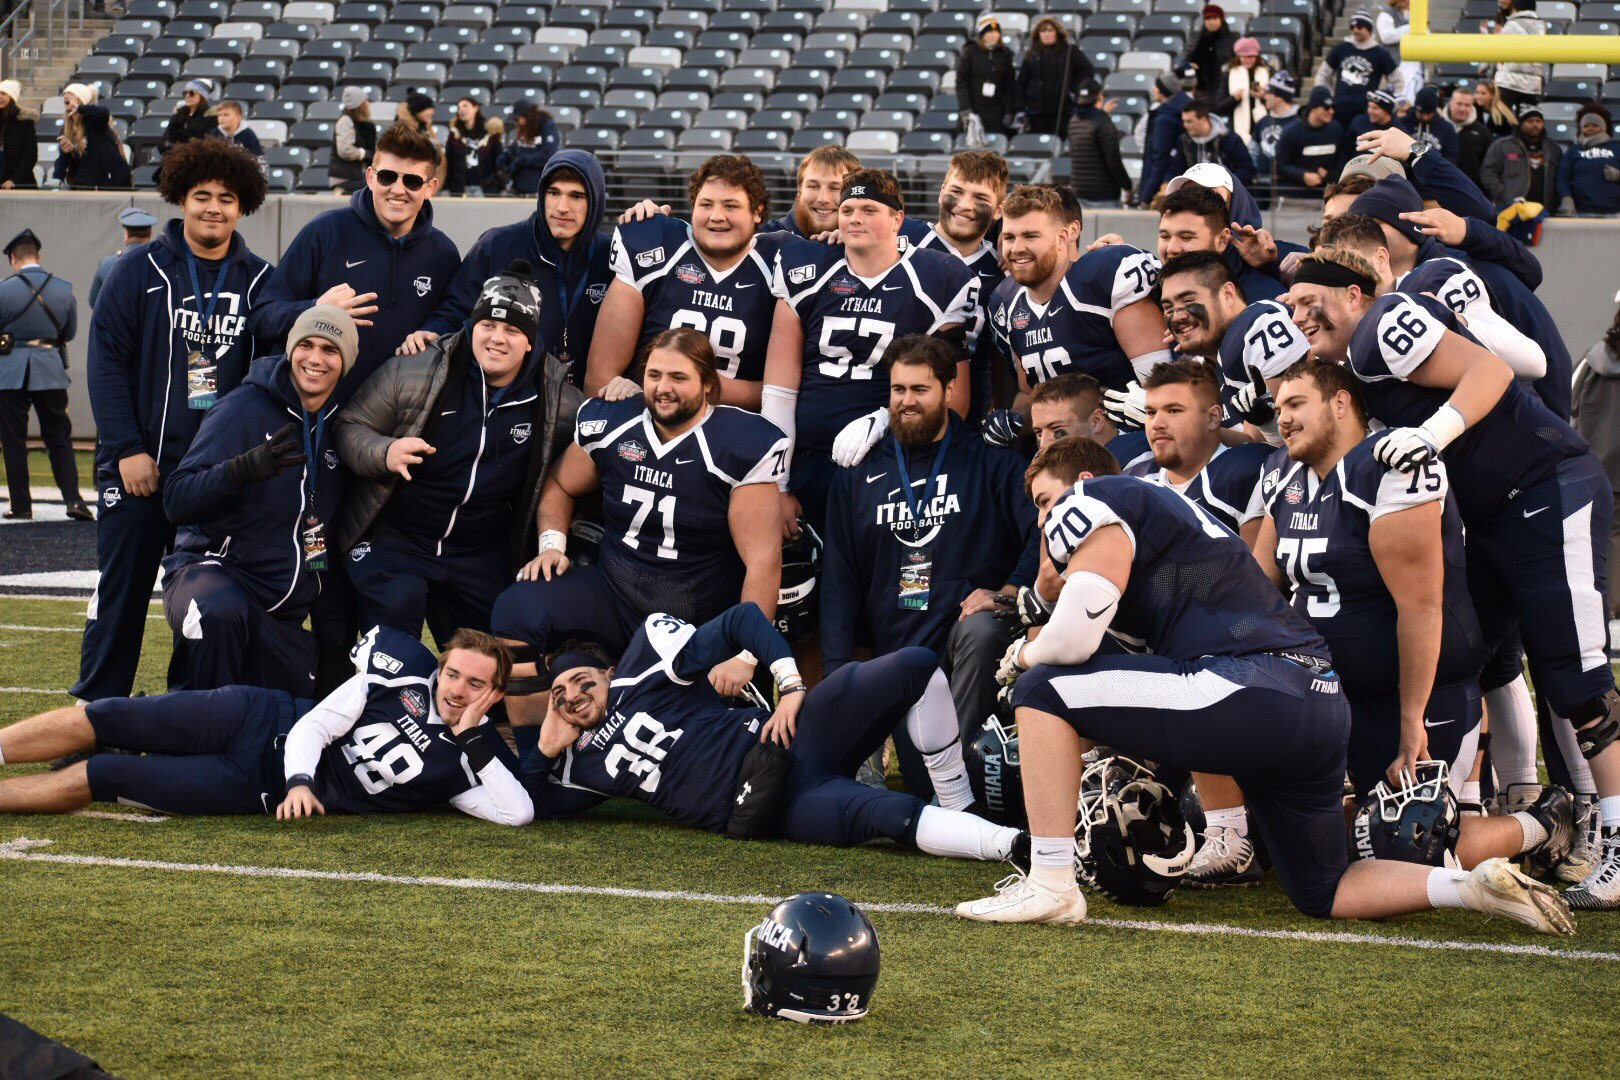 Ithaca brings home third consecutive Cortaca Jug with win at MetLife Stadium